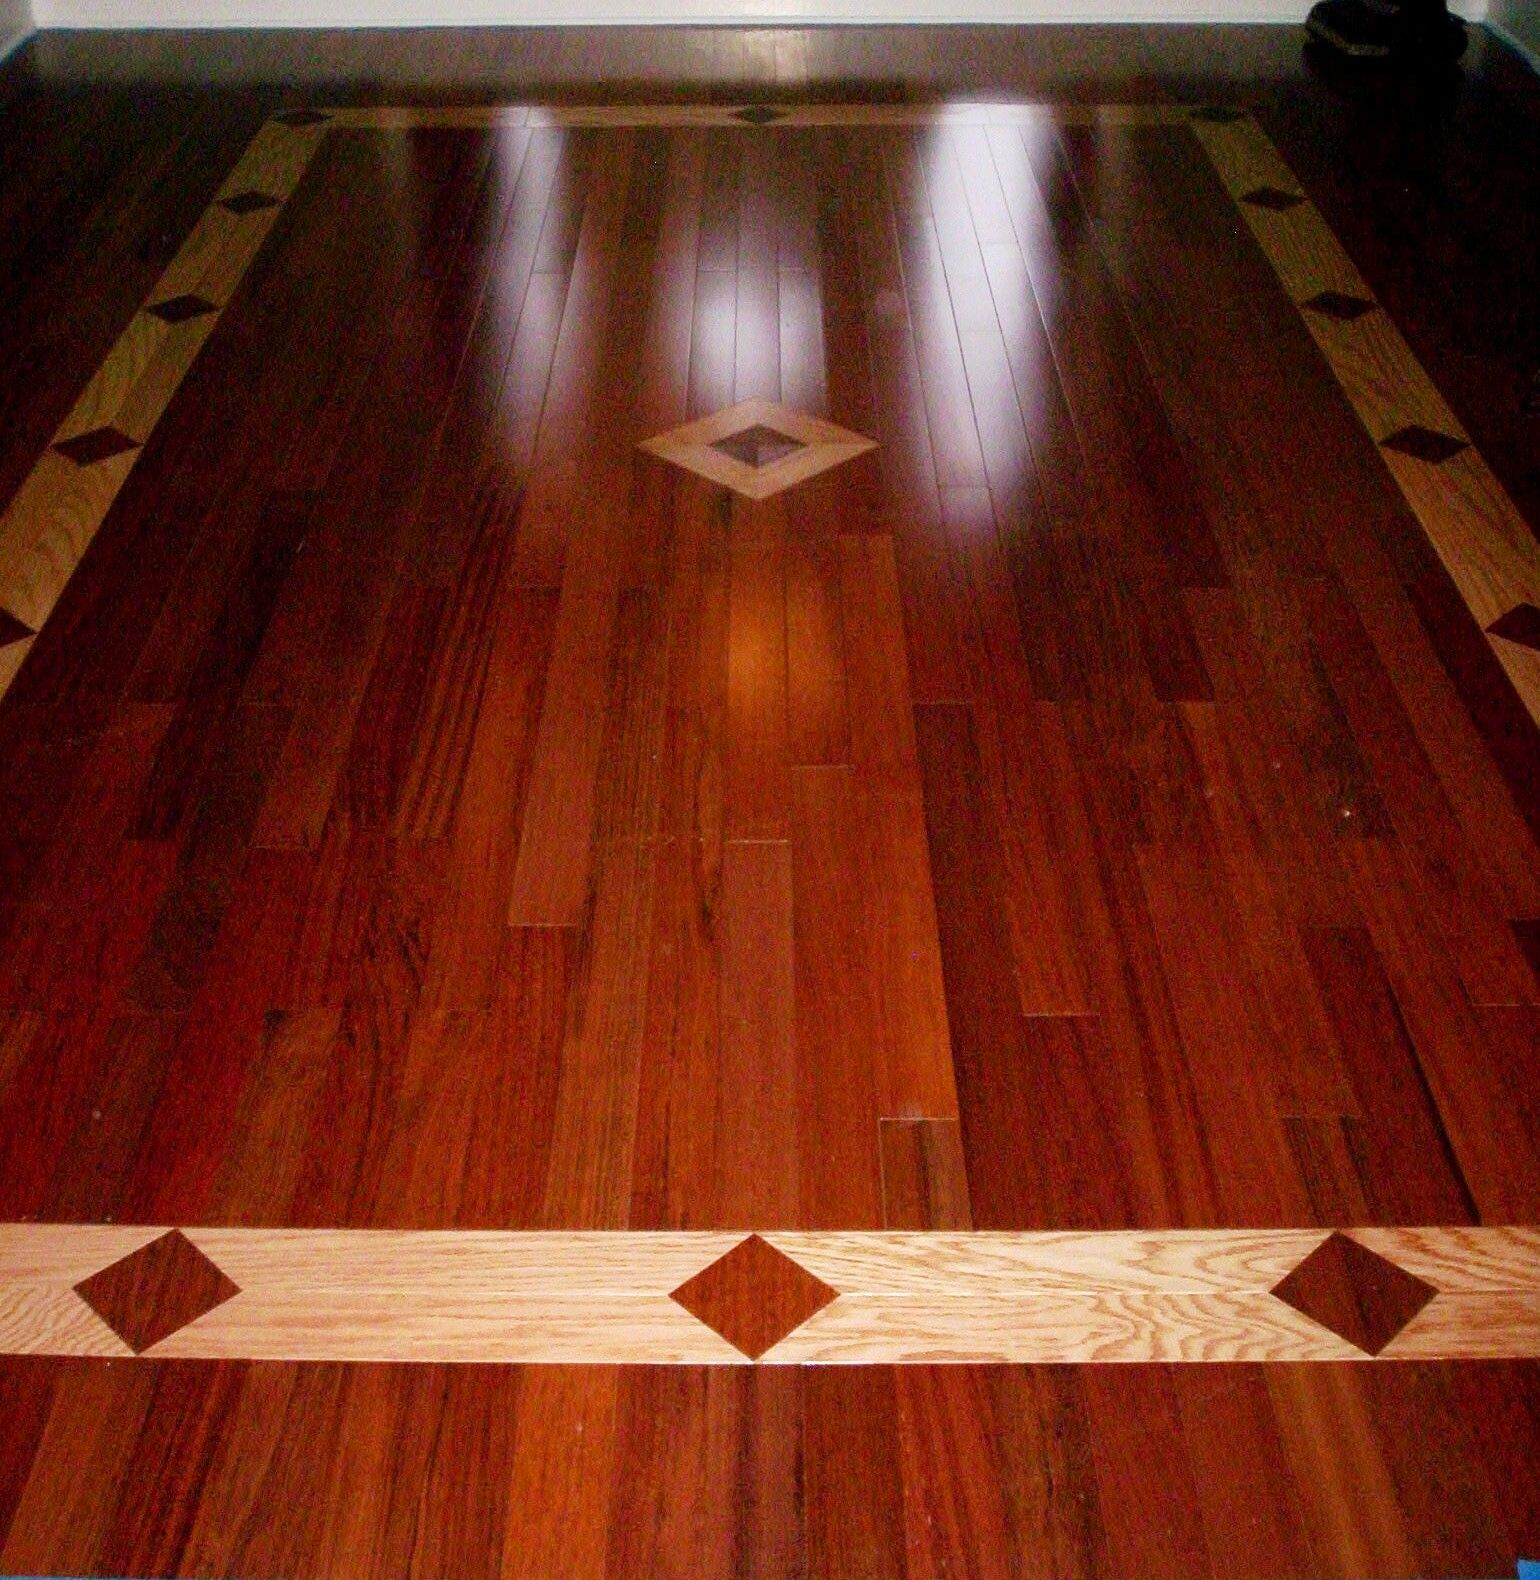 Brazilian Cherry Hardwood Floor With A Red Oak Inlay Design